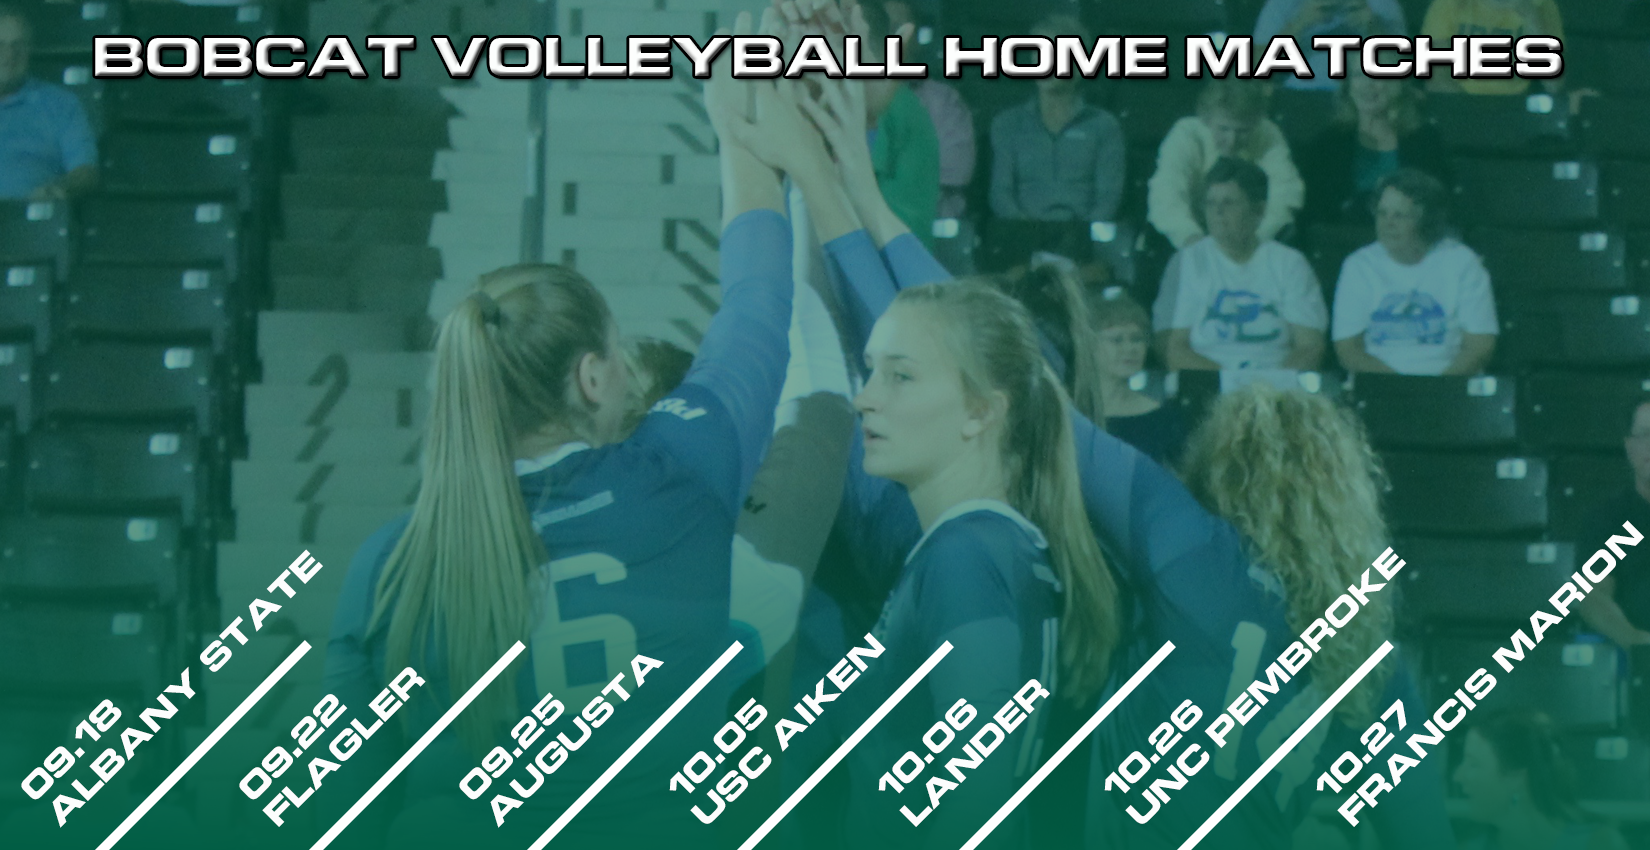 2018 Bobcat Volleyball Schedule